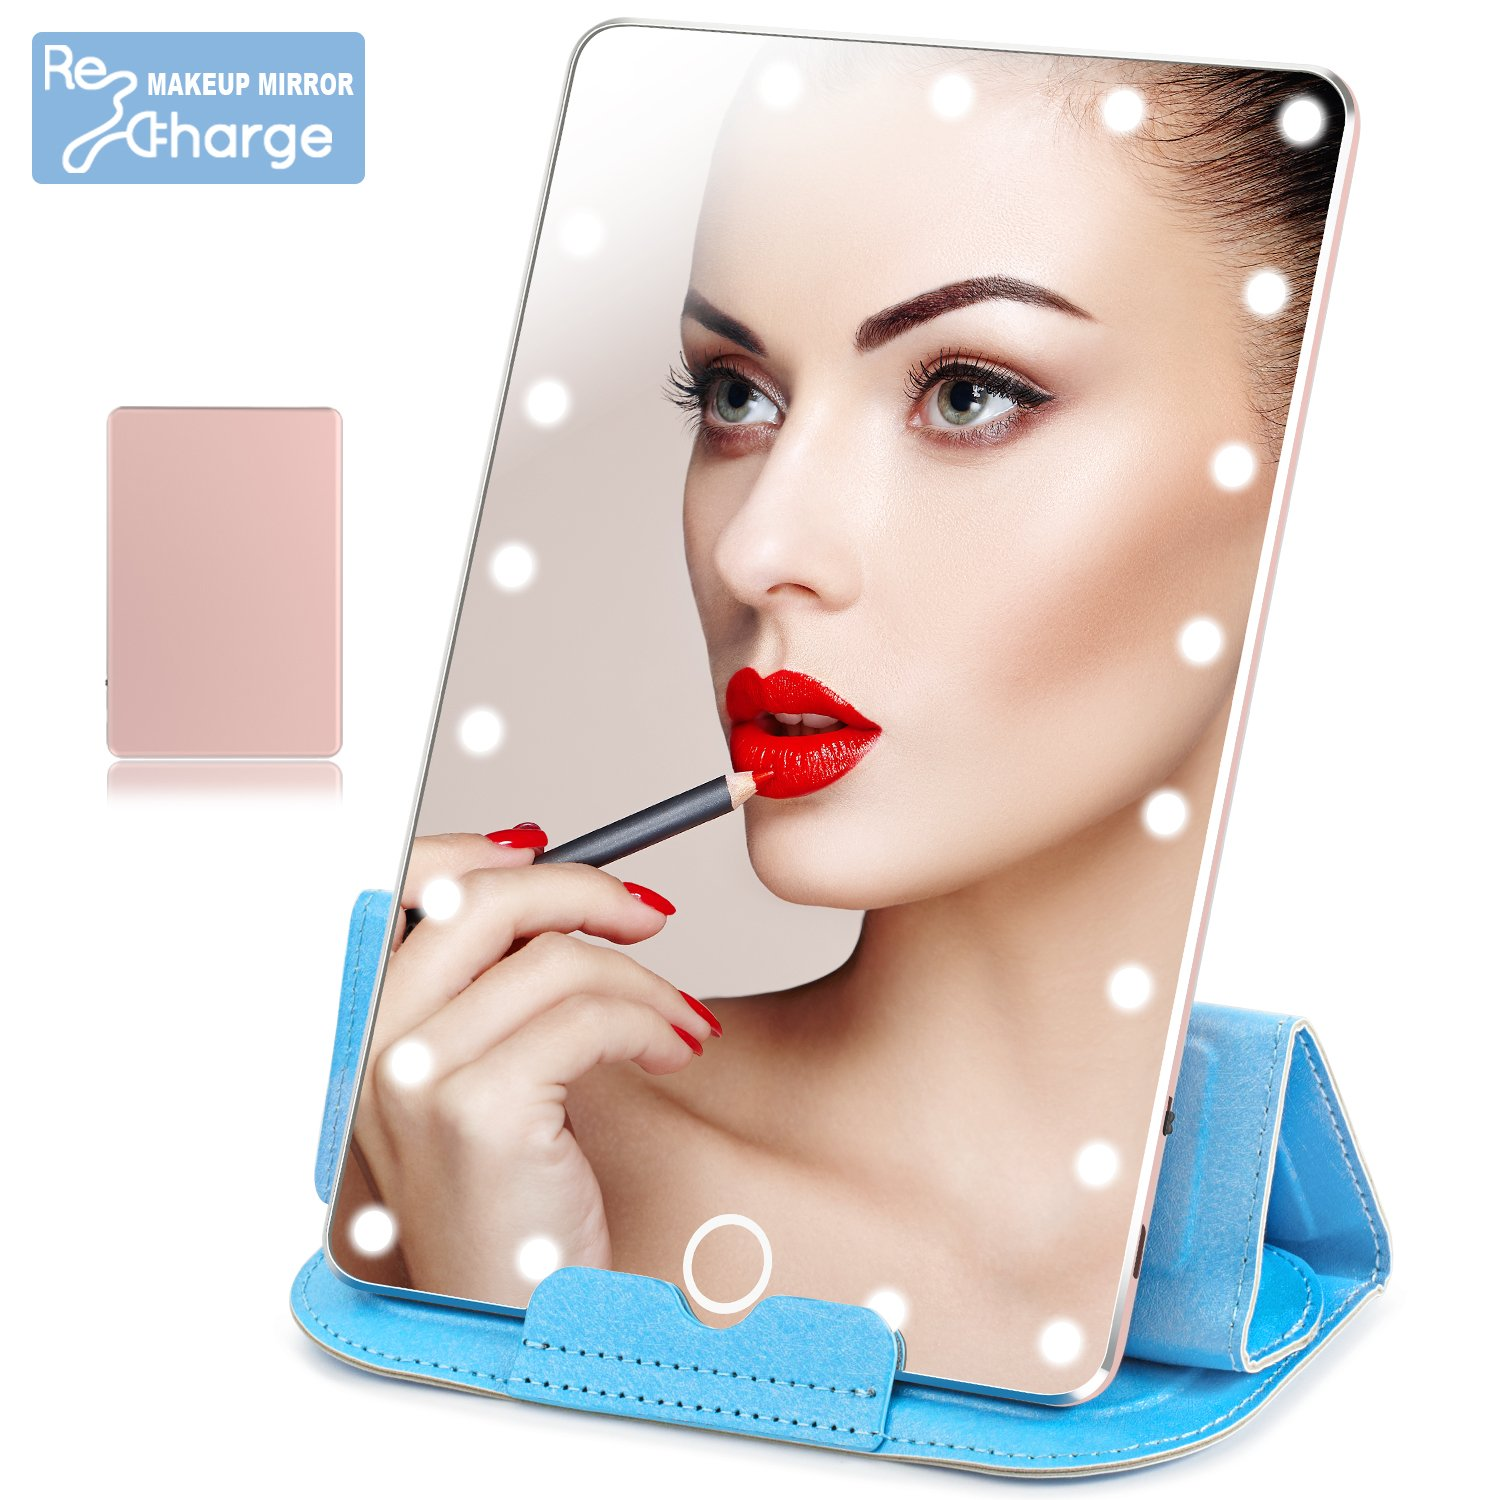 LoiZau Lighted Makeup Mirror, Rechargeable 21 LEDs Dimmable 7.9 Inch Portable Vanity Makeup Mirror with Lights for Travel USB Charging(Rose Gold)